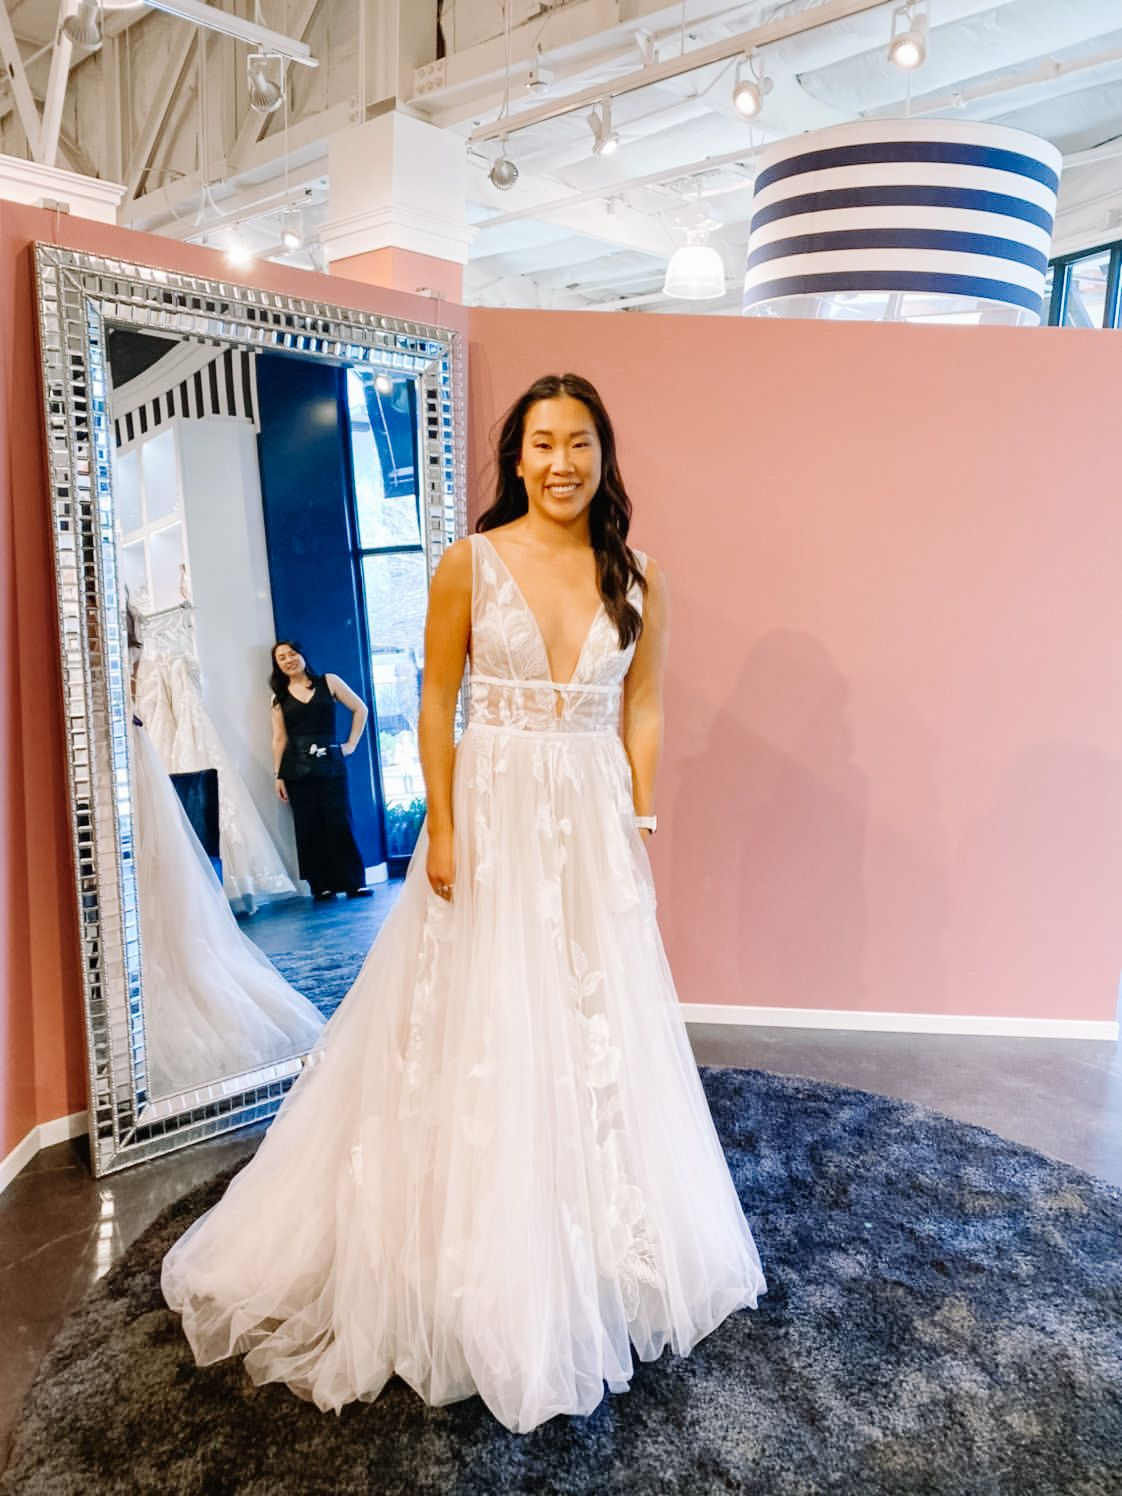 Find This Wedding Dress And More At Janene S Bridal Boutique Located In Alameda Ca Cont In 2020 Wedding Dresses Designer Wedding Gowns Wedding Dresses Lace